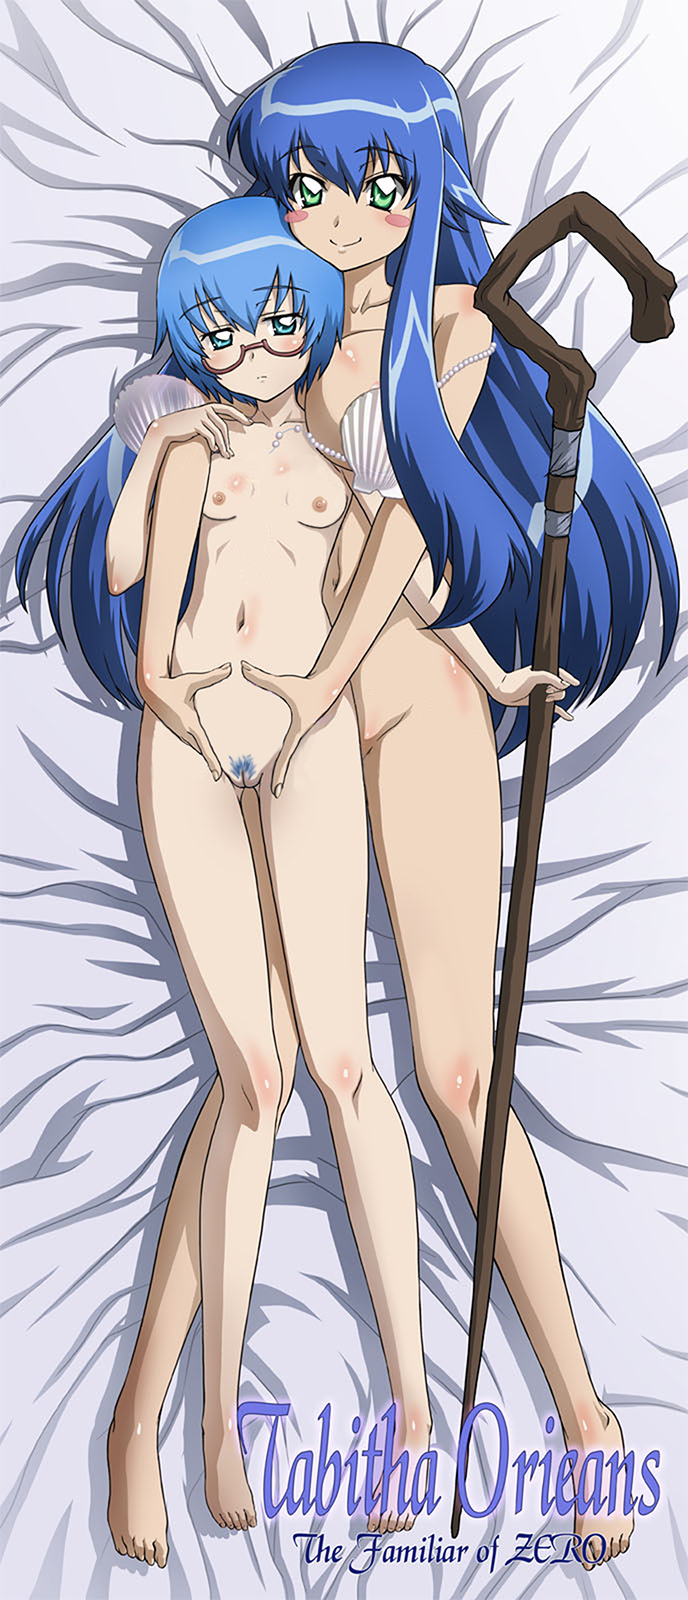 the bed webcomic monster the under Fire emblem 3 houses annette